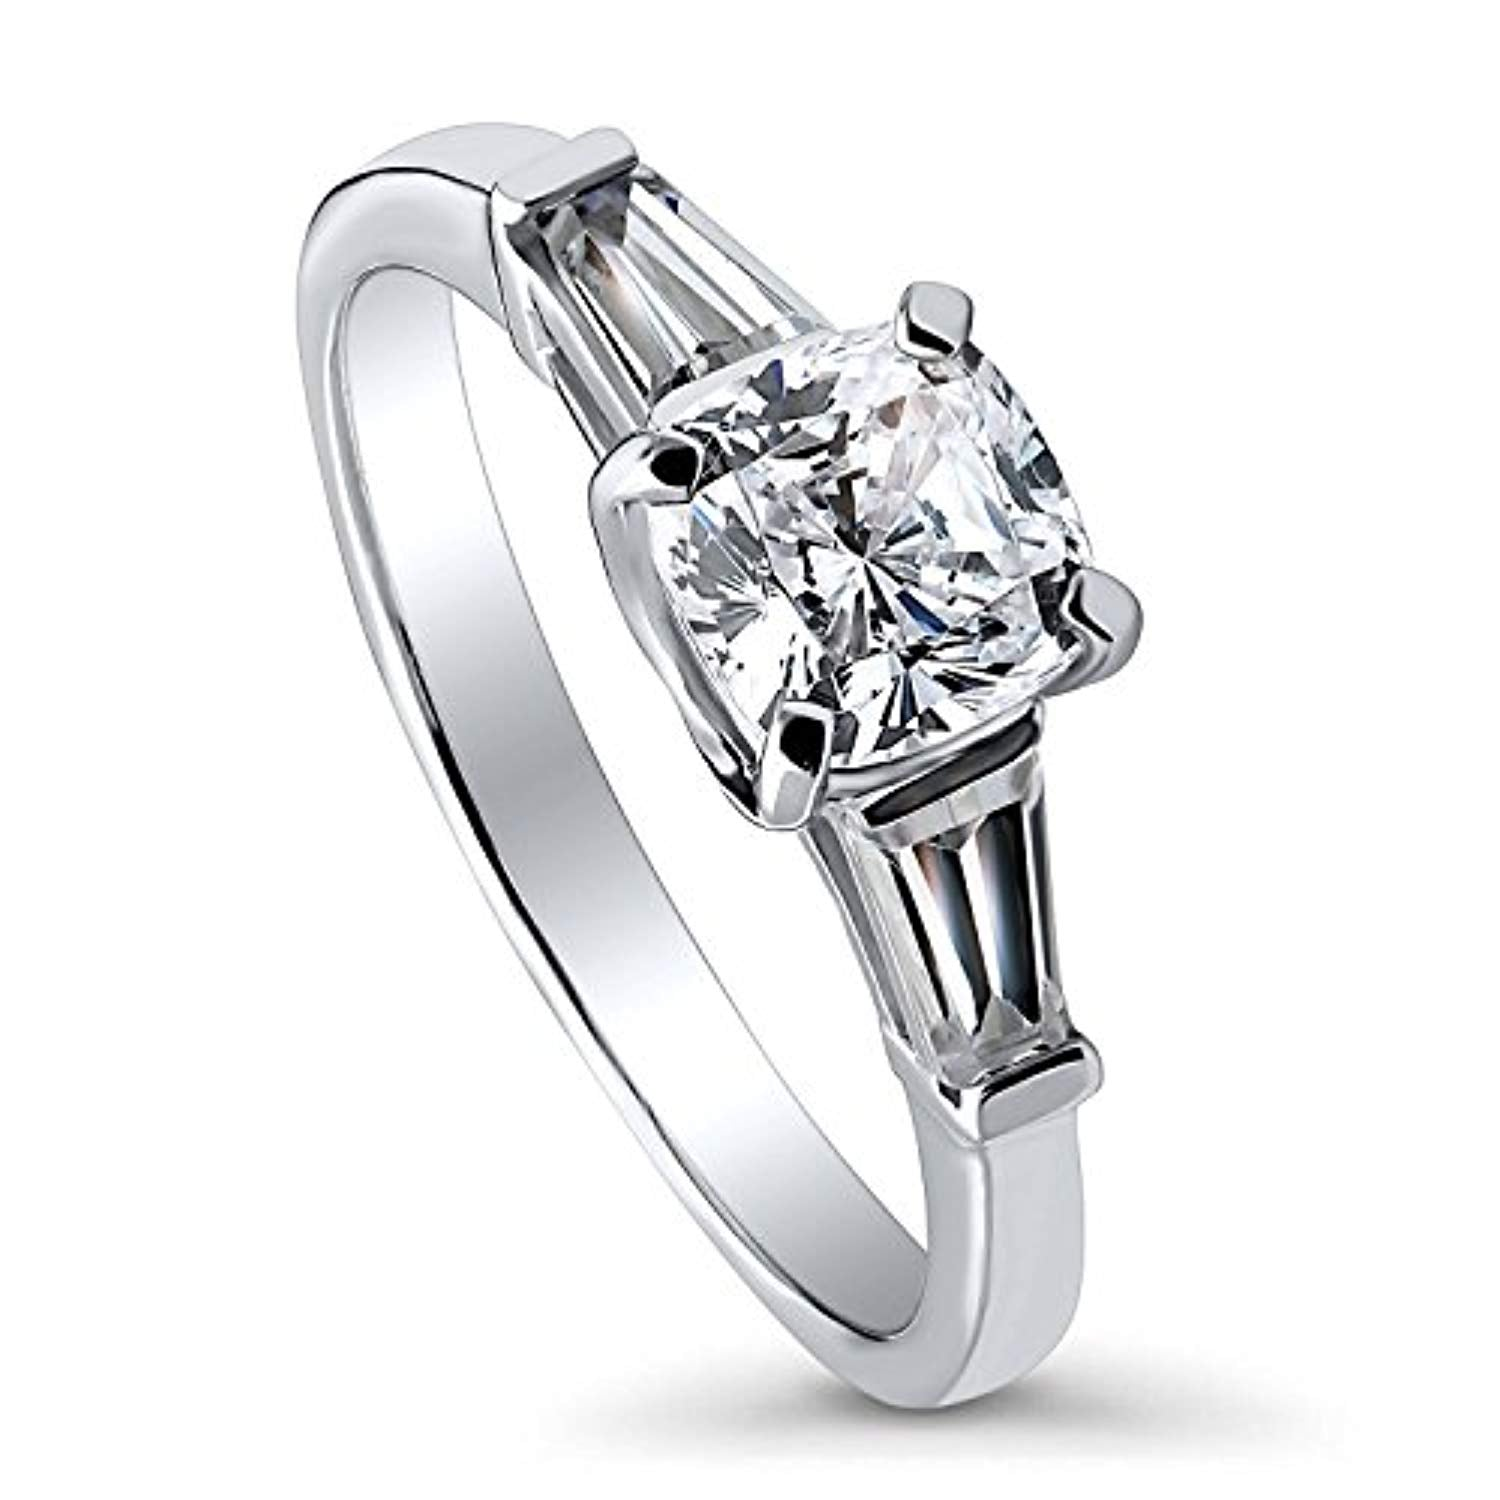 Rhodium Plated Sterling Silver Cushion Cut Cubic Zirconia CZ 3-Stone Anniversary Promise Engagement Ring